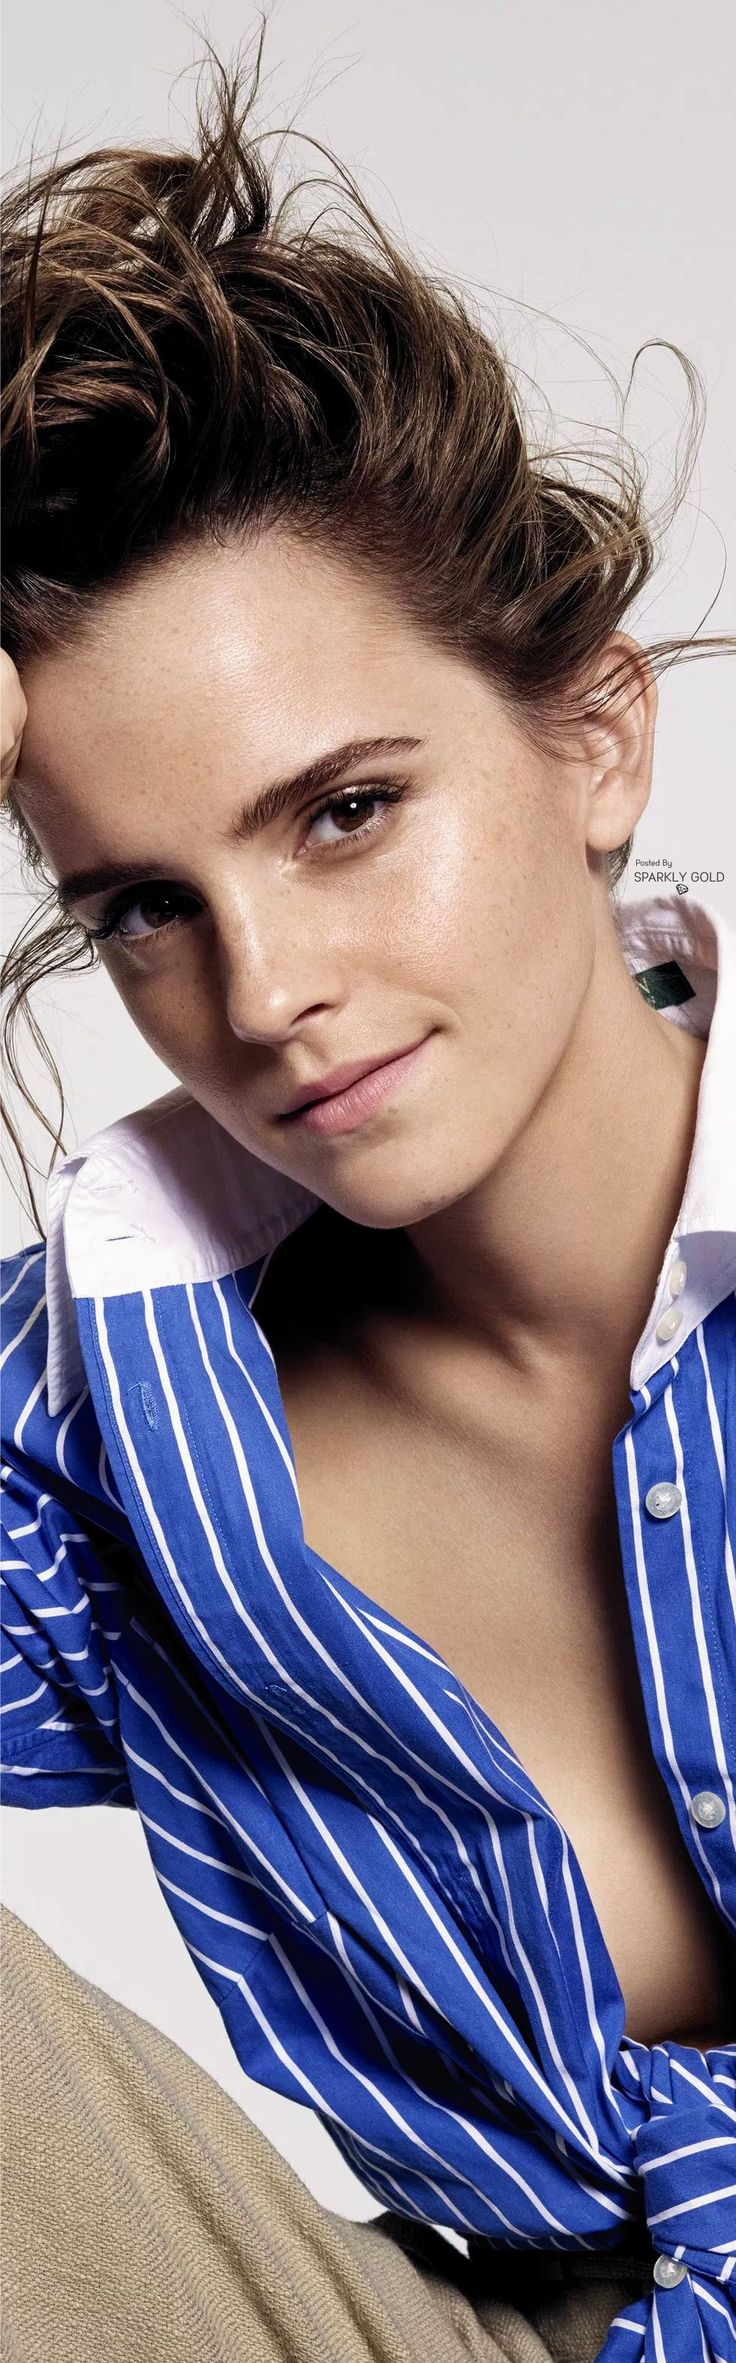 Emma Watson/Elle UK March 17